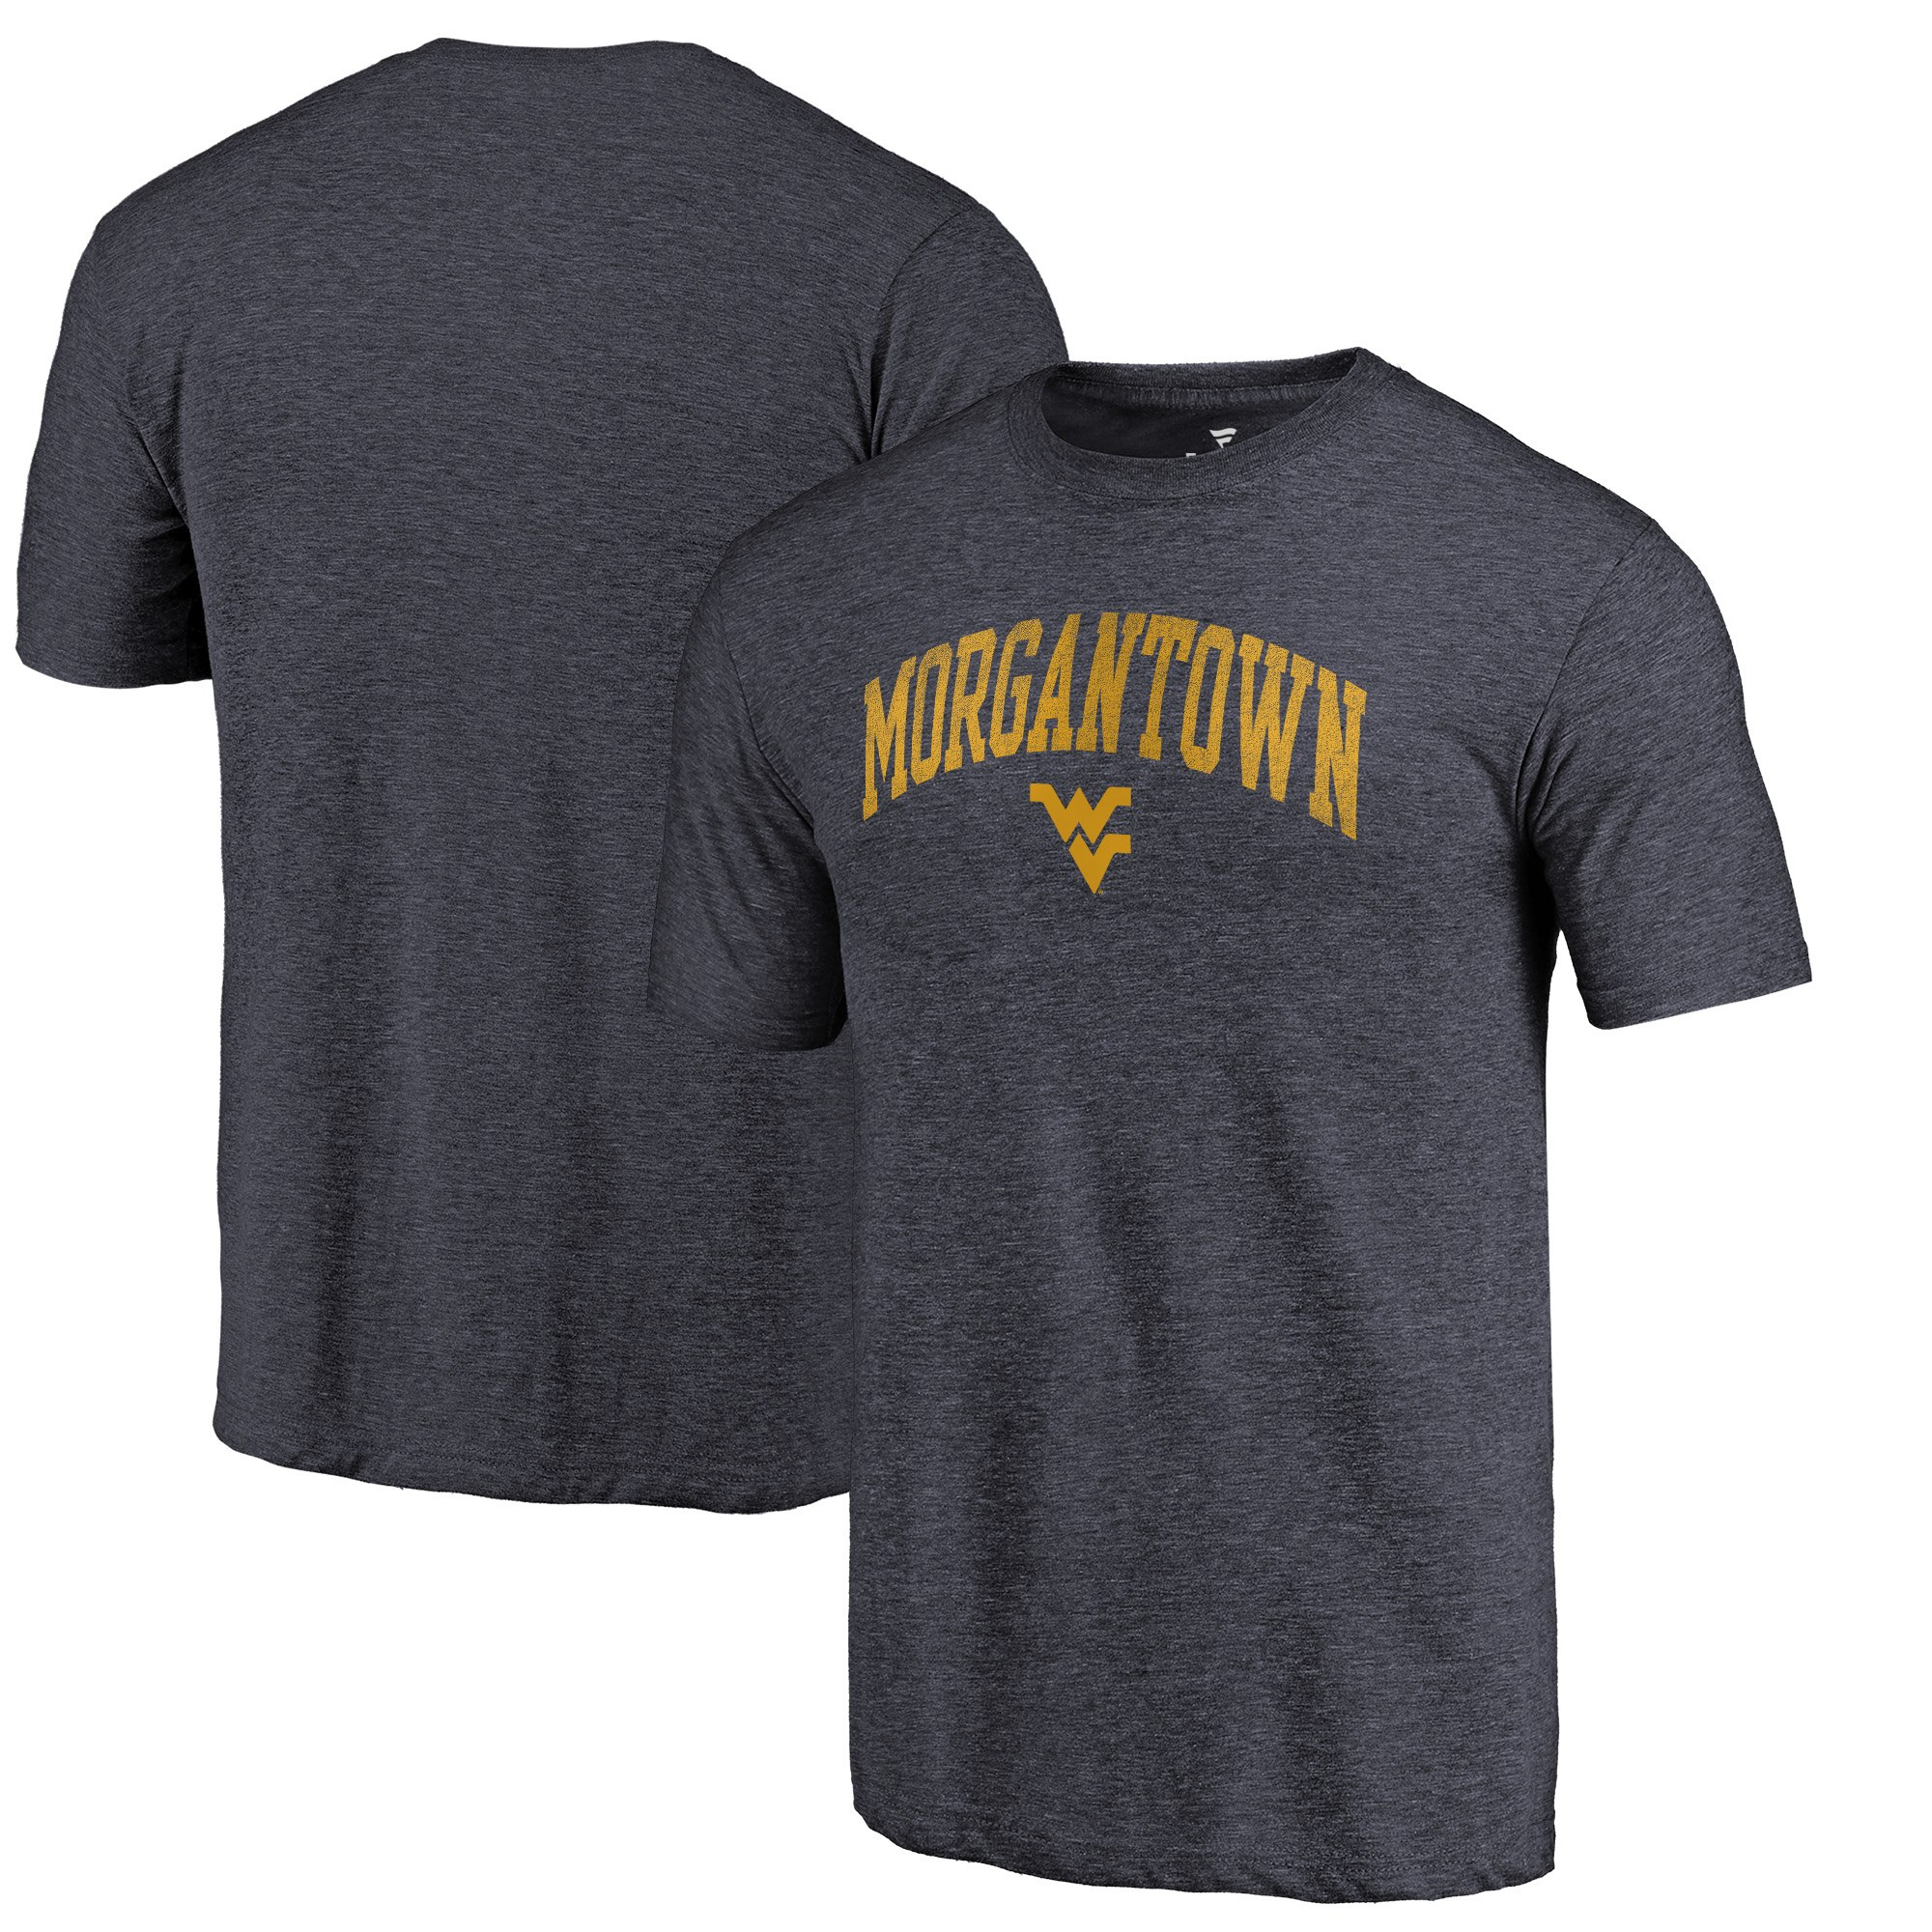 West Virginia Mountaineers Fanatics Branded Navy Hometown Arched City Tri-Blend T-Shirt